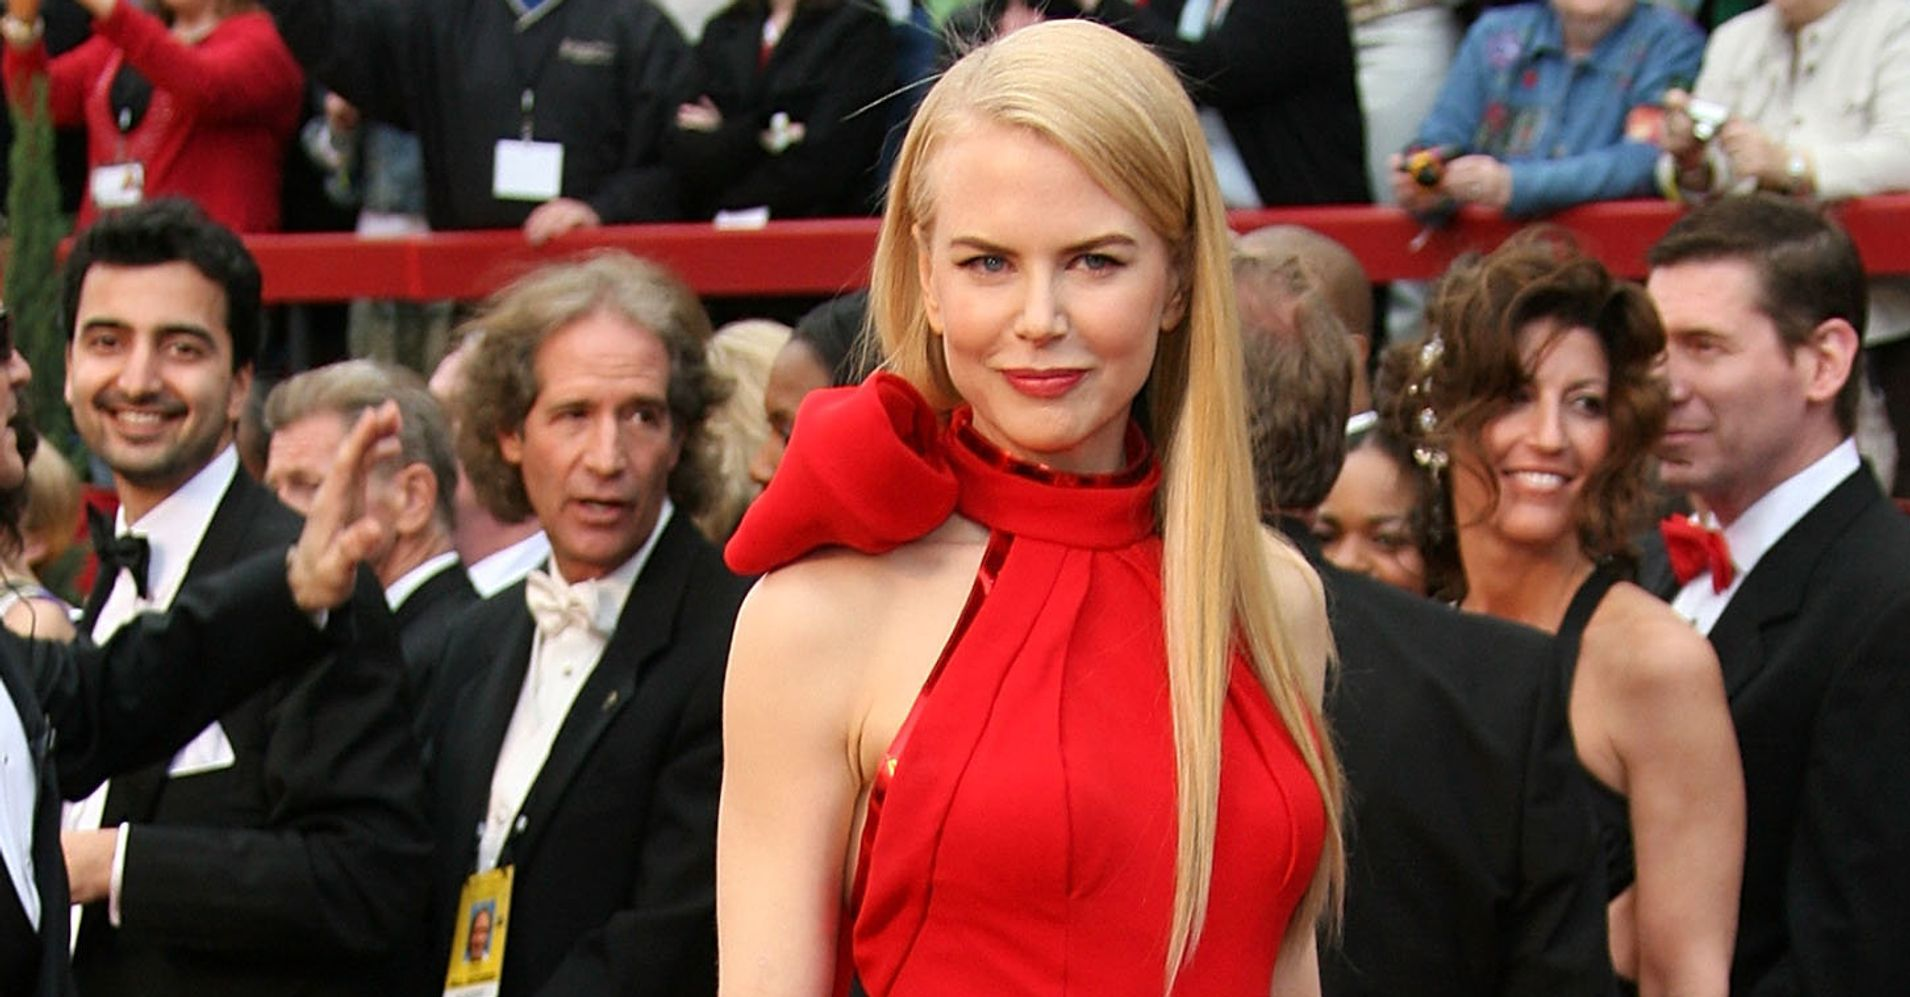 Here\'s What A Man Perceives When A Woman Wears Red | HuffPost